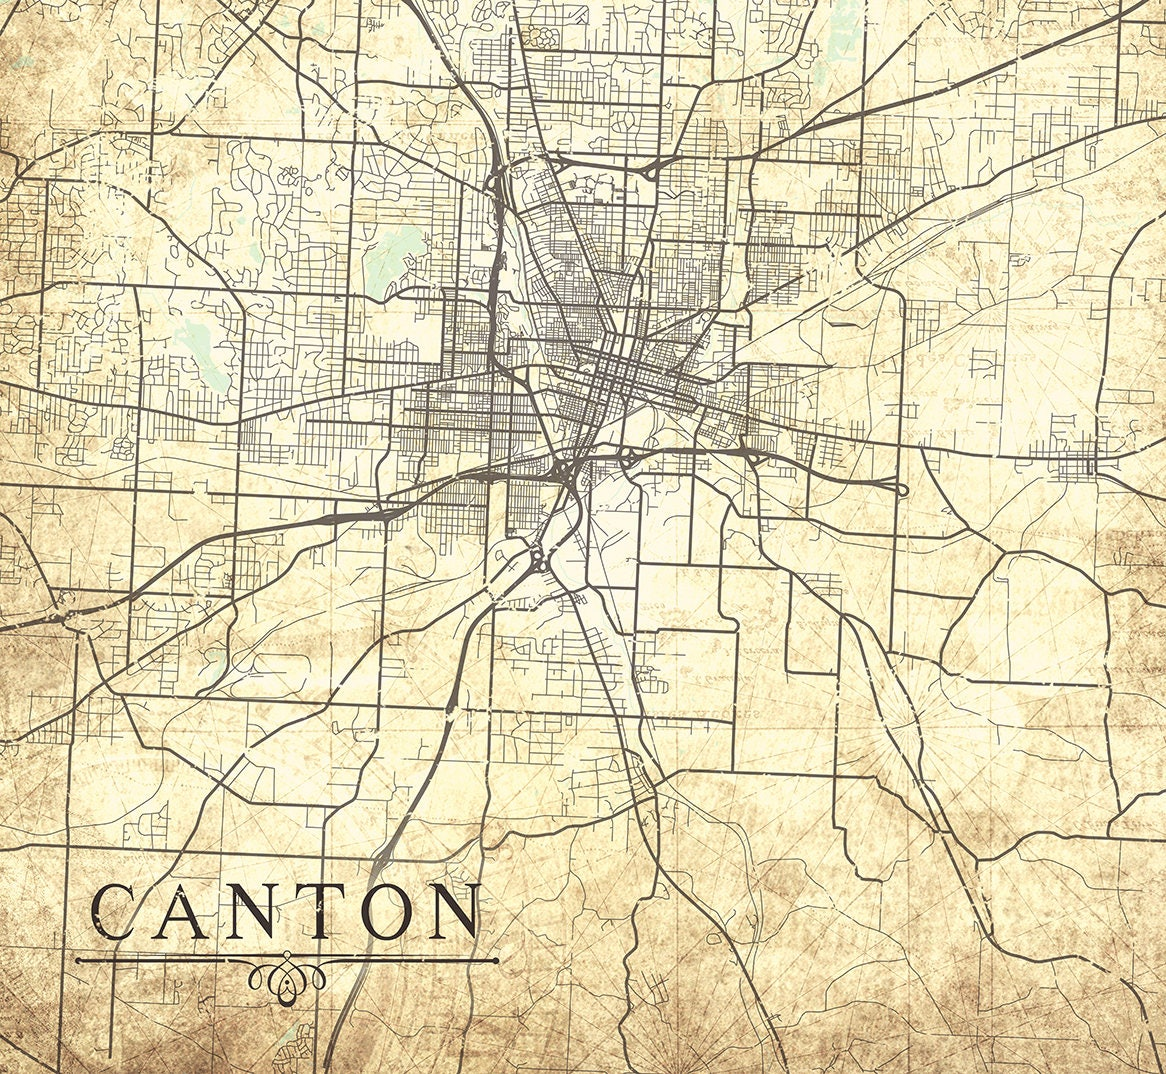 CANTON OH Canvas print Ohio OH Canton Vintage map City Map ... on map of edgerton ohio, map of dublin ohio, map of wells township ohio, map of alger ohio, map of northeast ohio, map of akron ohio, map of larue ohio, detailed map of ohio, map of toledo ohio, map of parkman ohio, map of newbury ohio, map of berlin heights ohio, map of new york, map of nashville ohio, map of black river ohio, map of bowersville ohio, map of williamsfield ohio, map of new holland ohio, map of findlay ohio, map of rittman ohio,